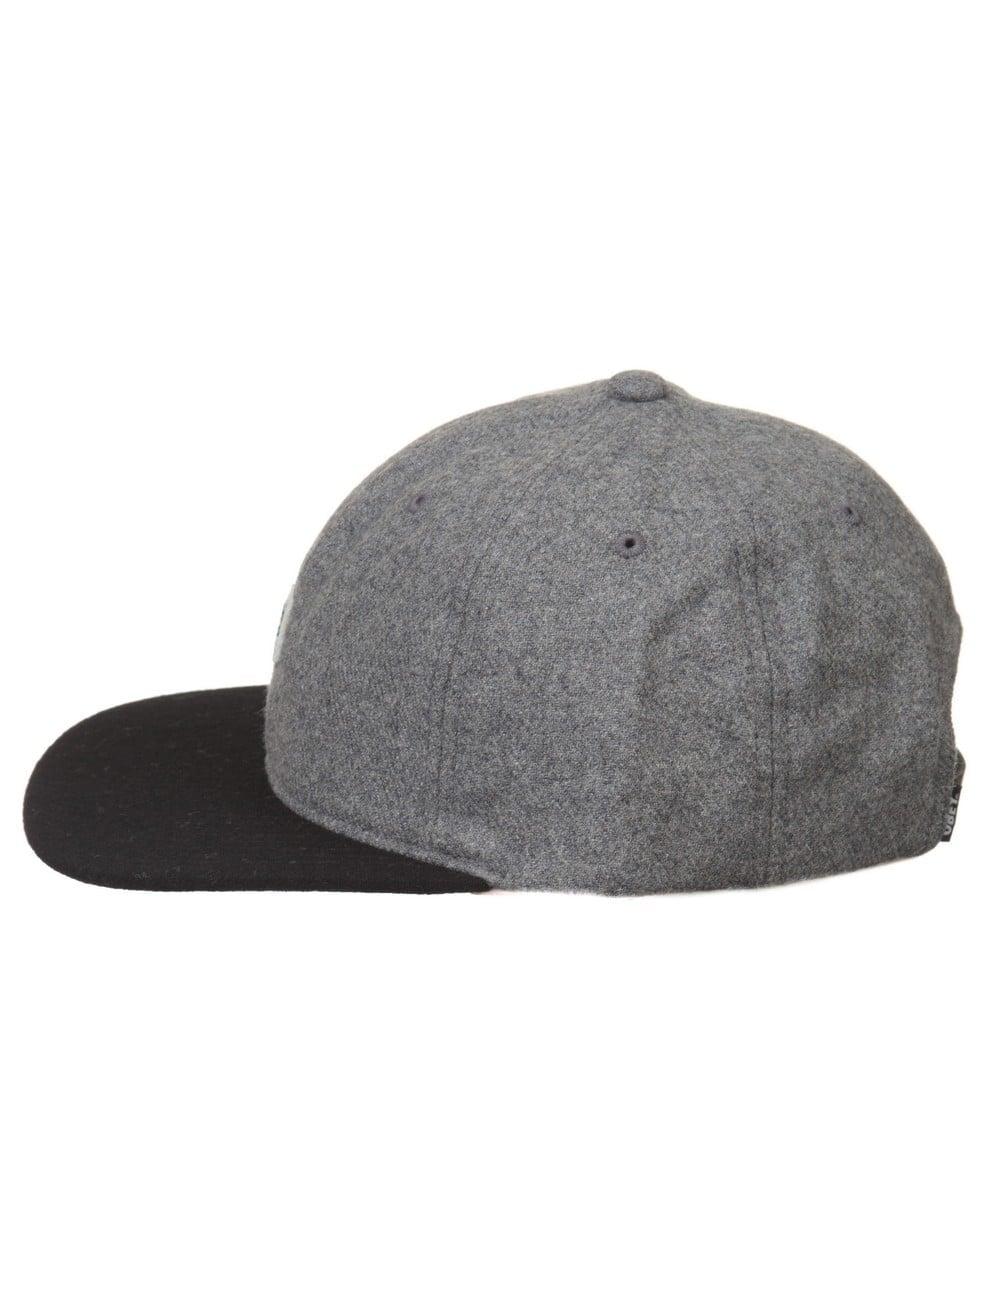 Obey Clothing Eighty Nine 6 Panel Hat - Heather Grey - Hat Shop from ... 99a61d8c07a